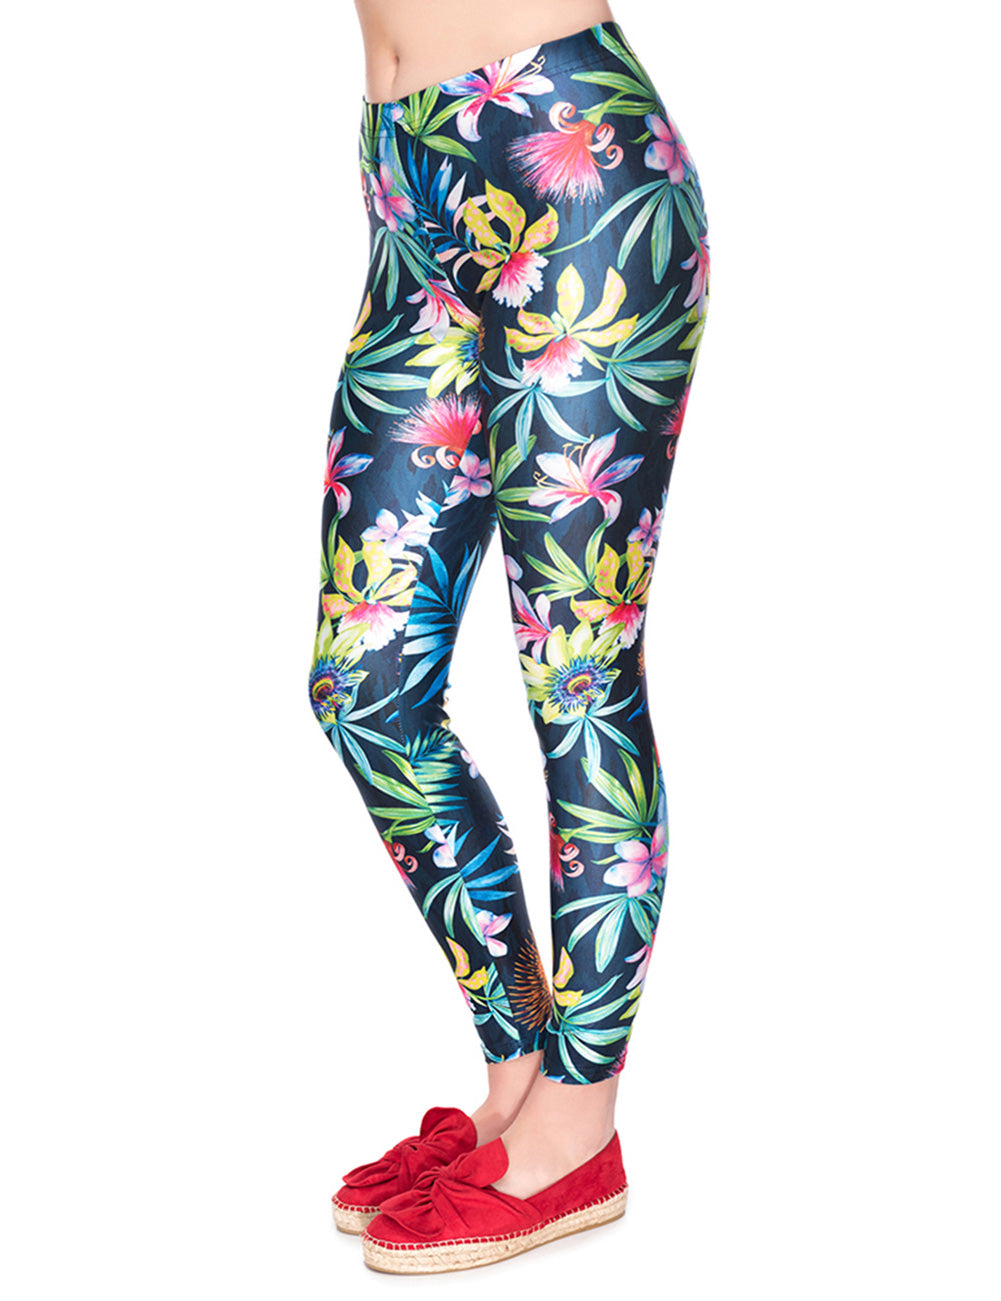 National Floral Print Yoga Pants 3D Technology Outdoor